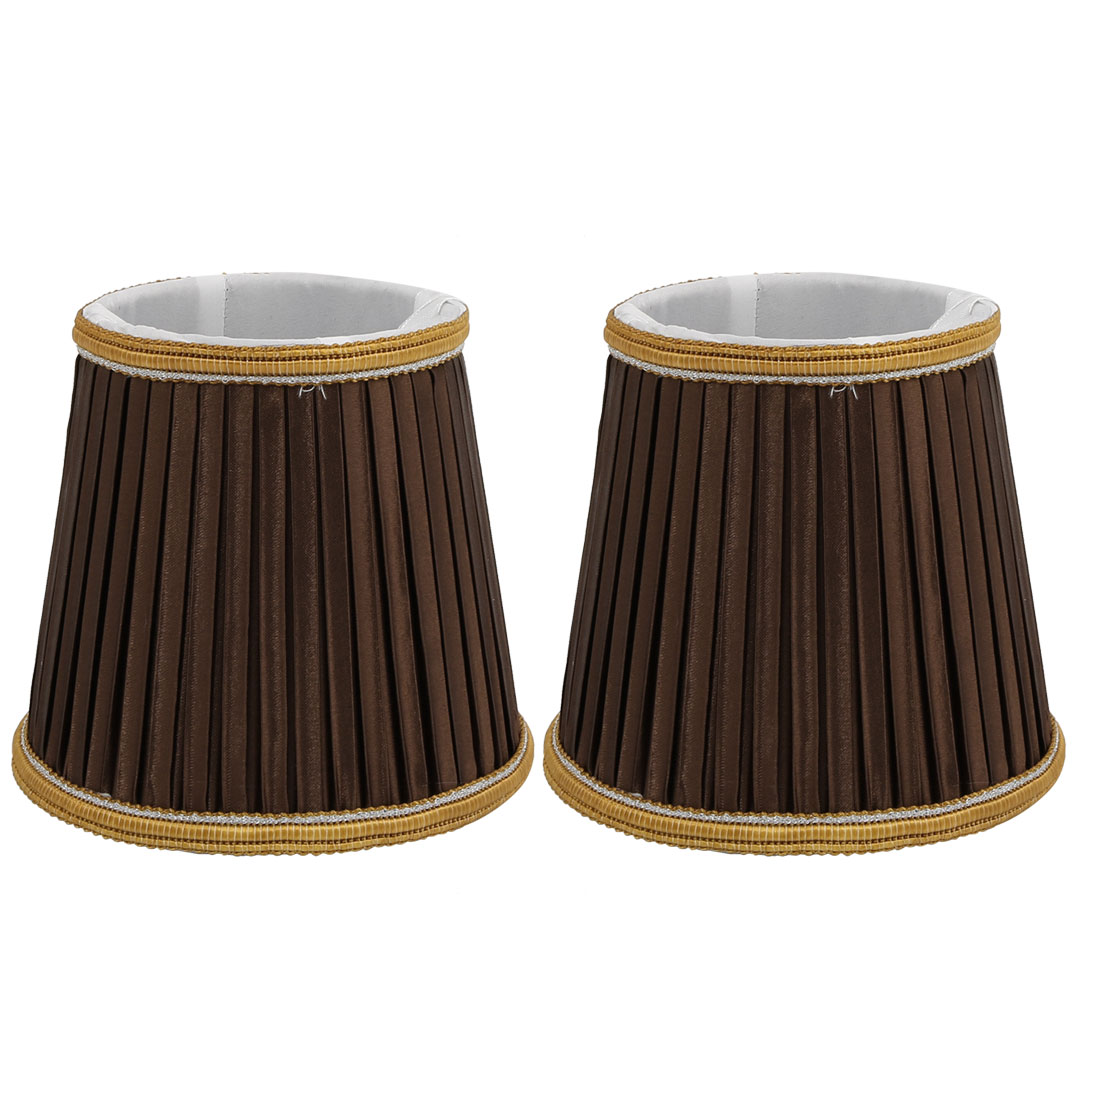 2pcs DropLight Wall Shade Chandelier Clip-On Lampshade Chocolate Fabric-Covered by